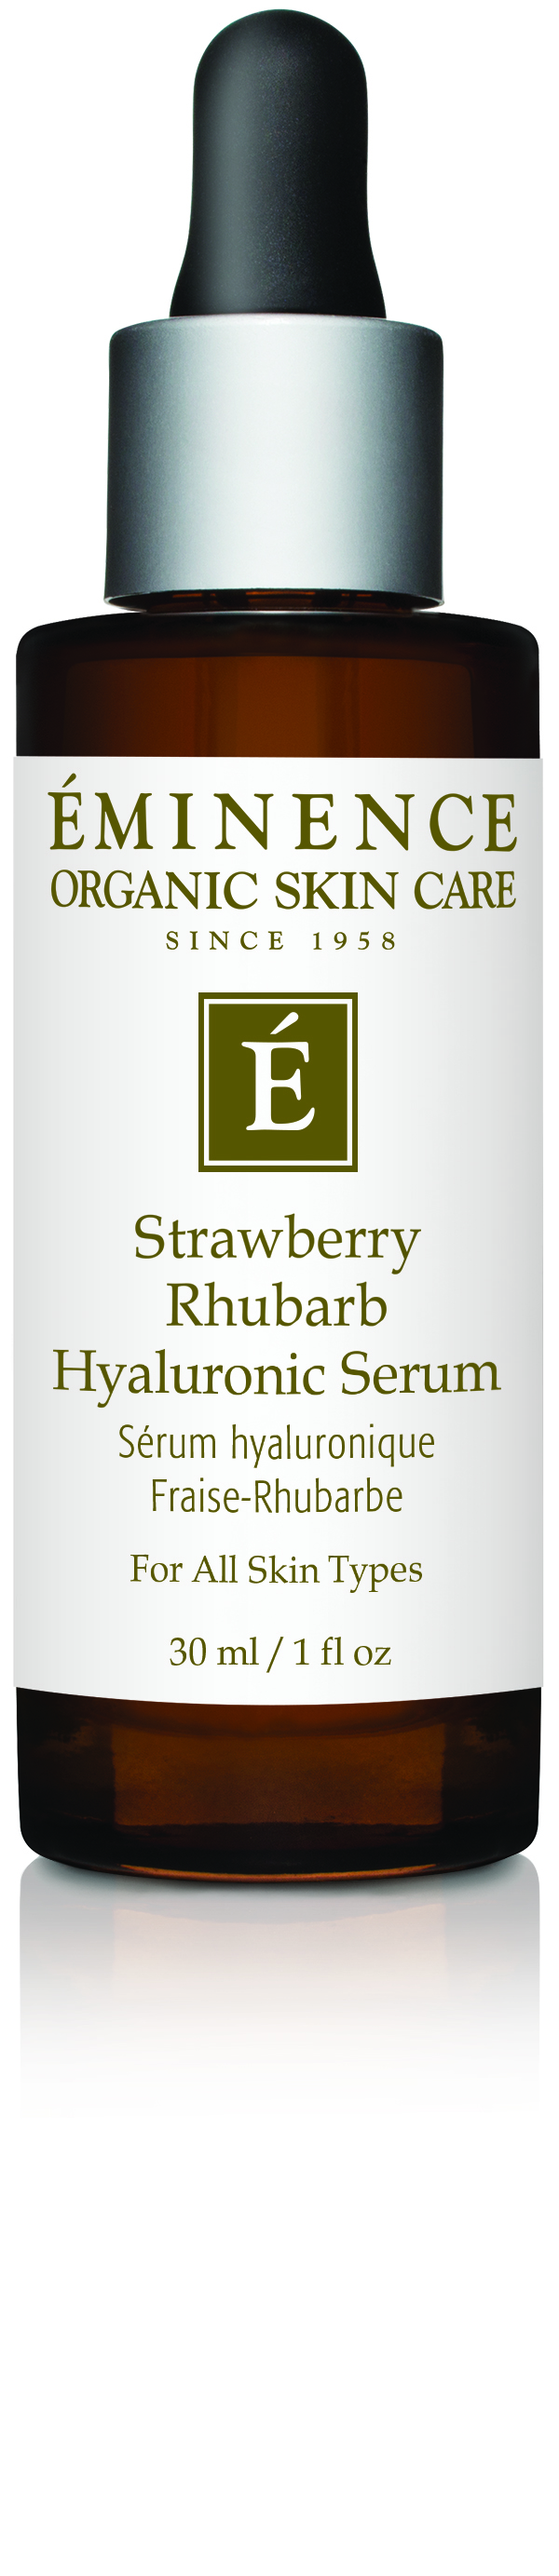 eminence-organics-1147-strawberry-rhubarb-hyaluronic-serum-jan6.jpg